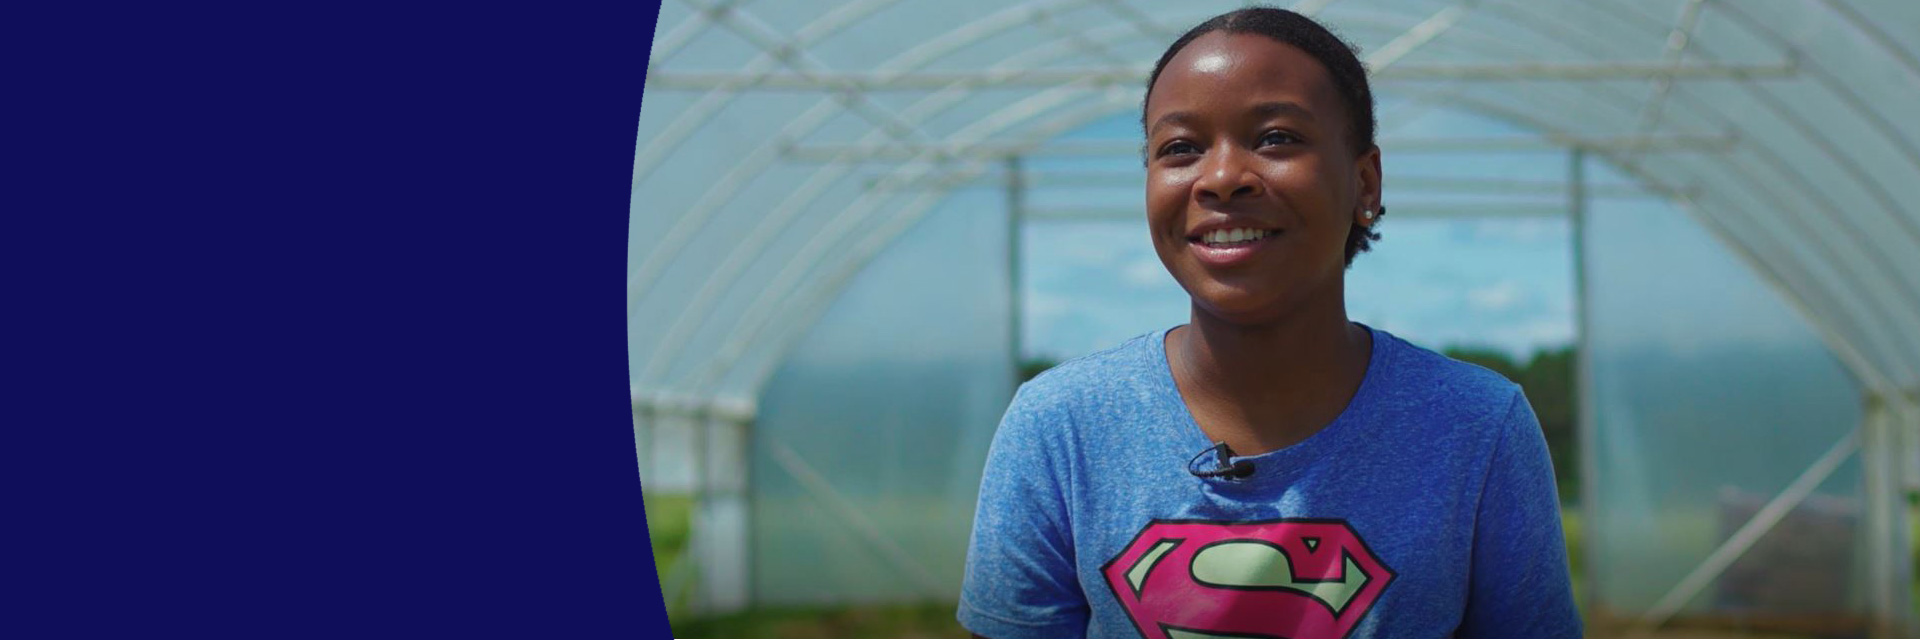 New video feature - SuperGirl